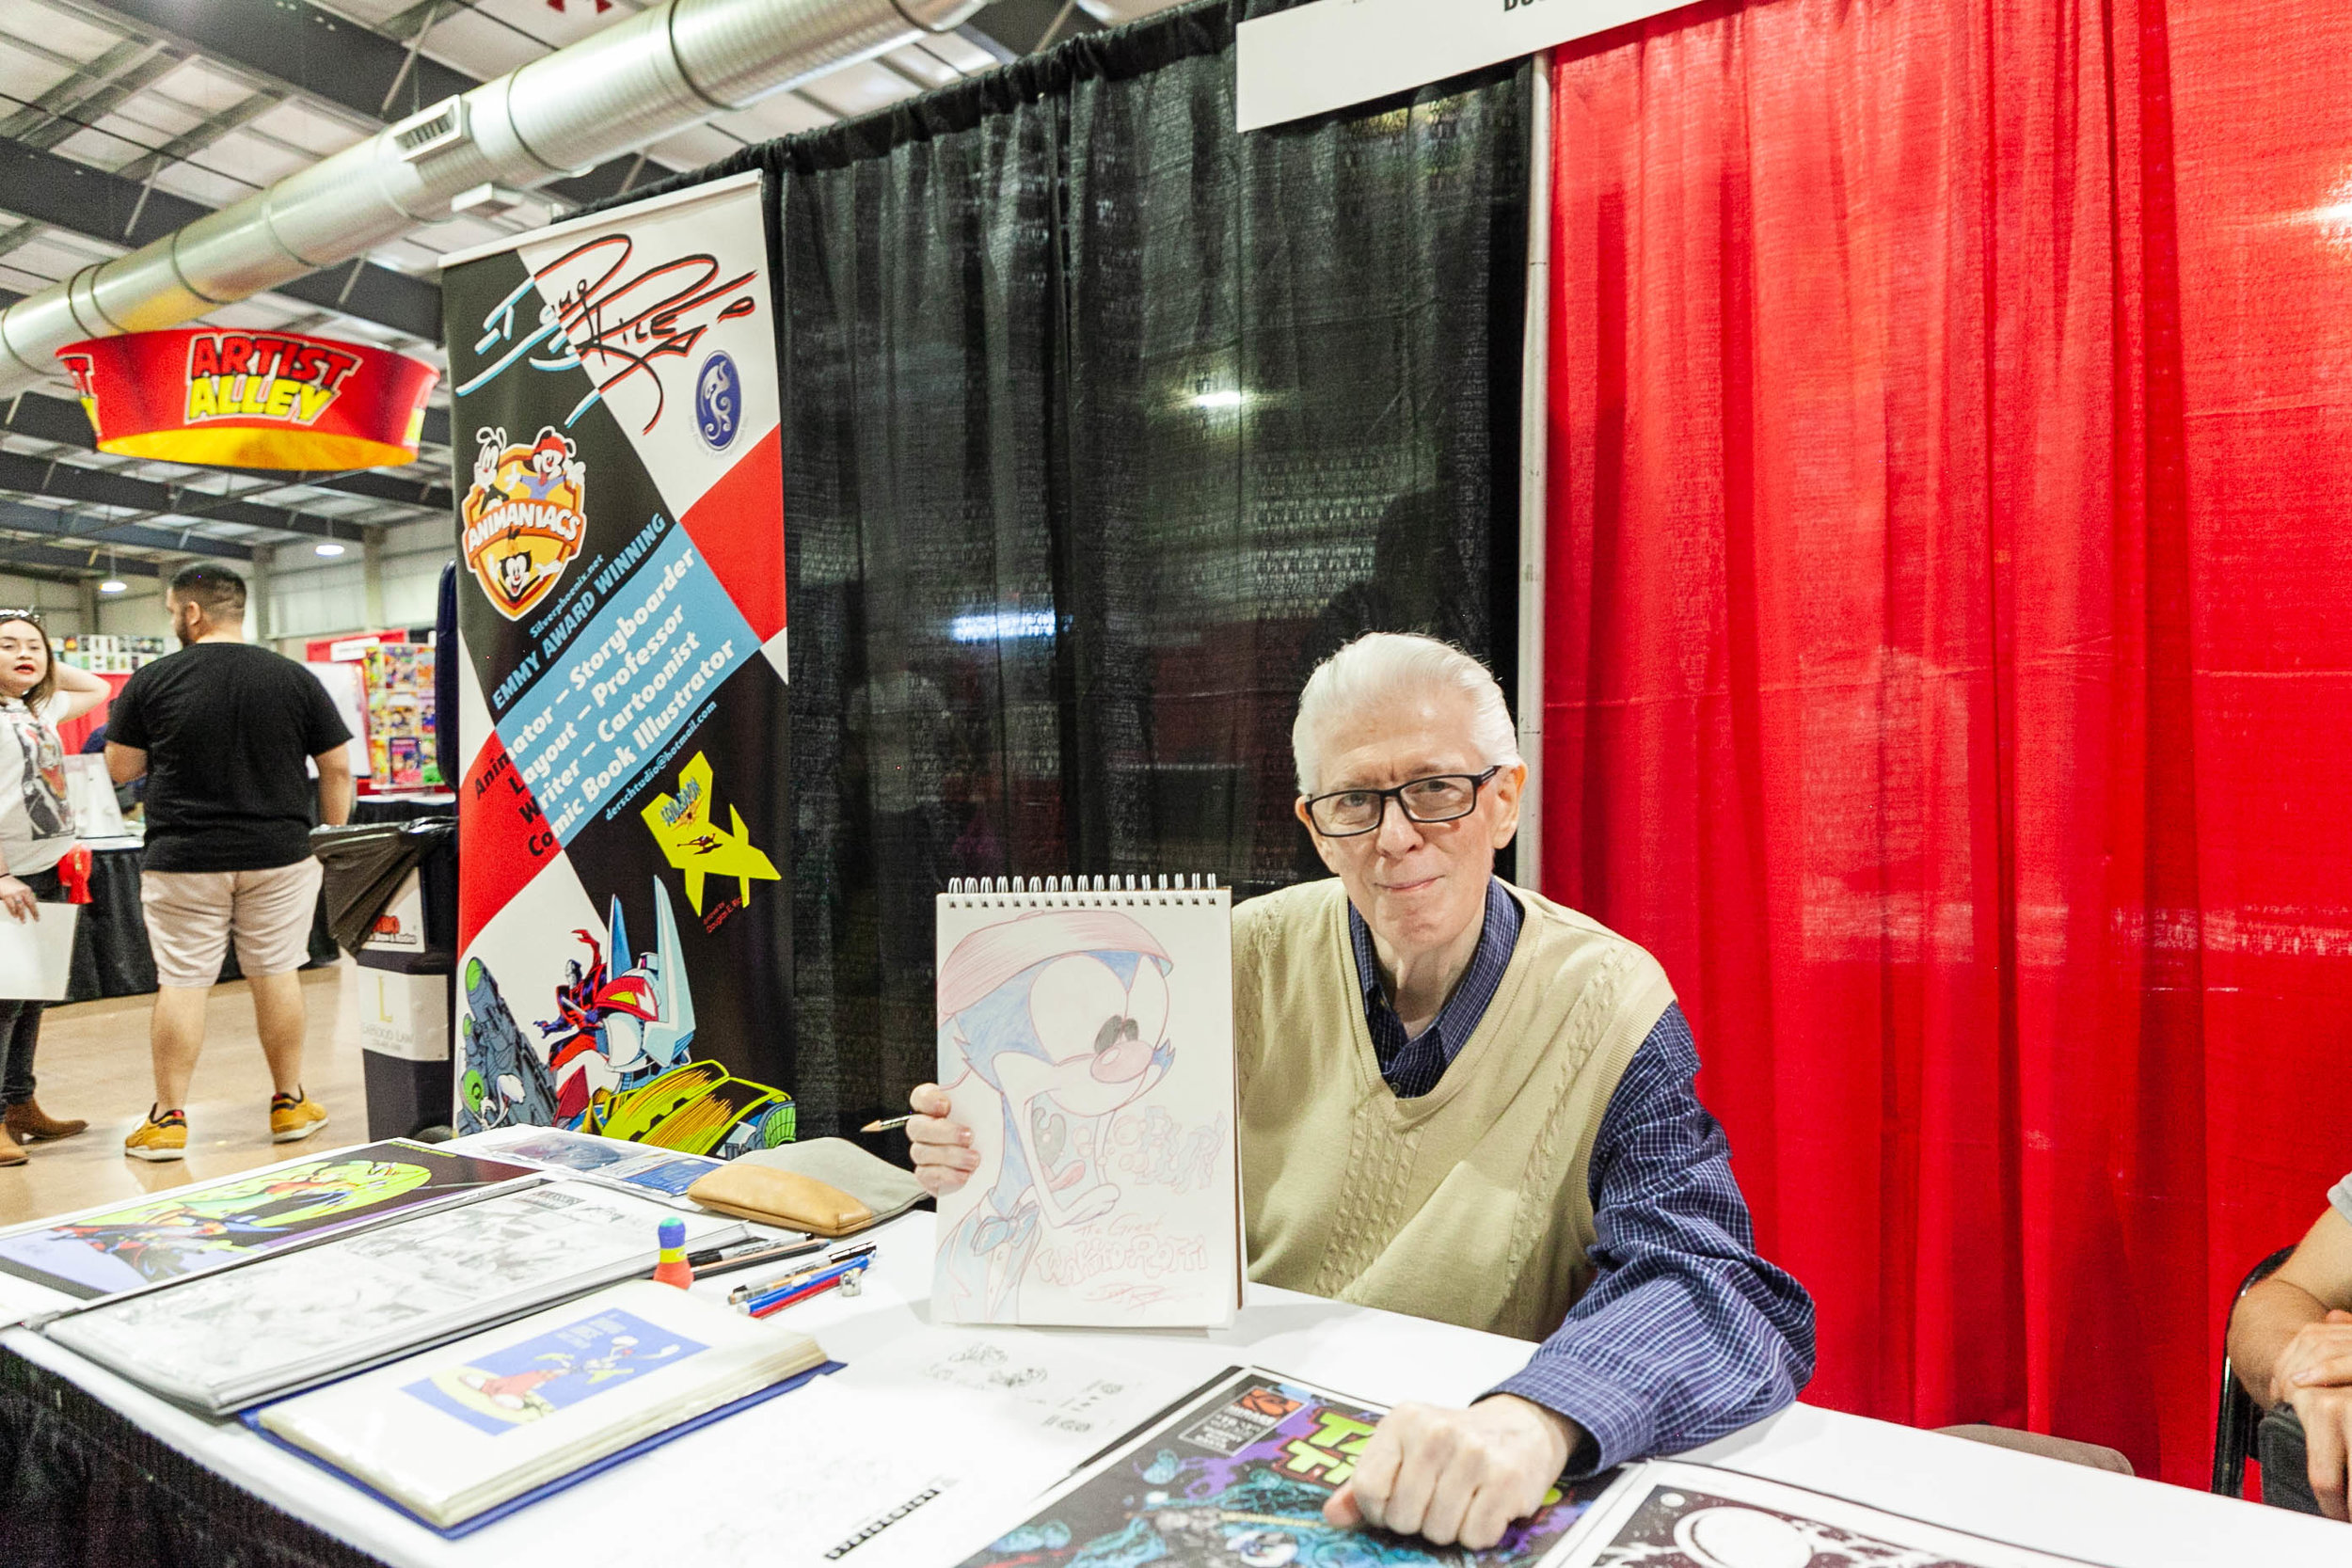 Doug Rice shows off some of his work. (Photo by  Luis Vazquez .)